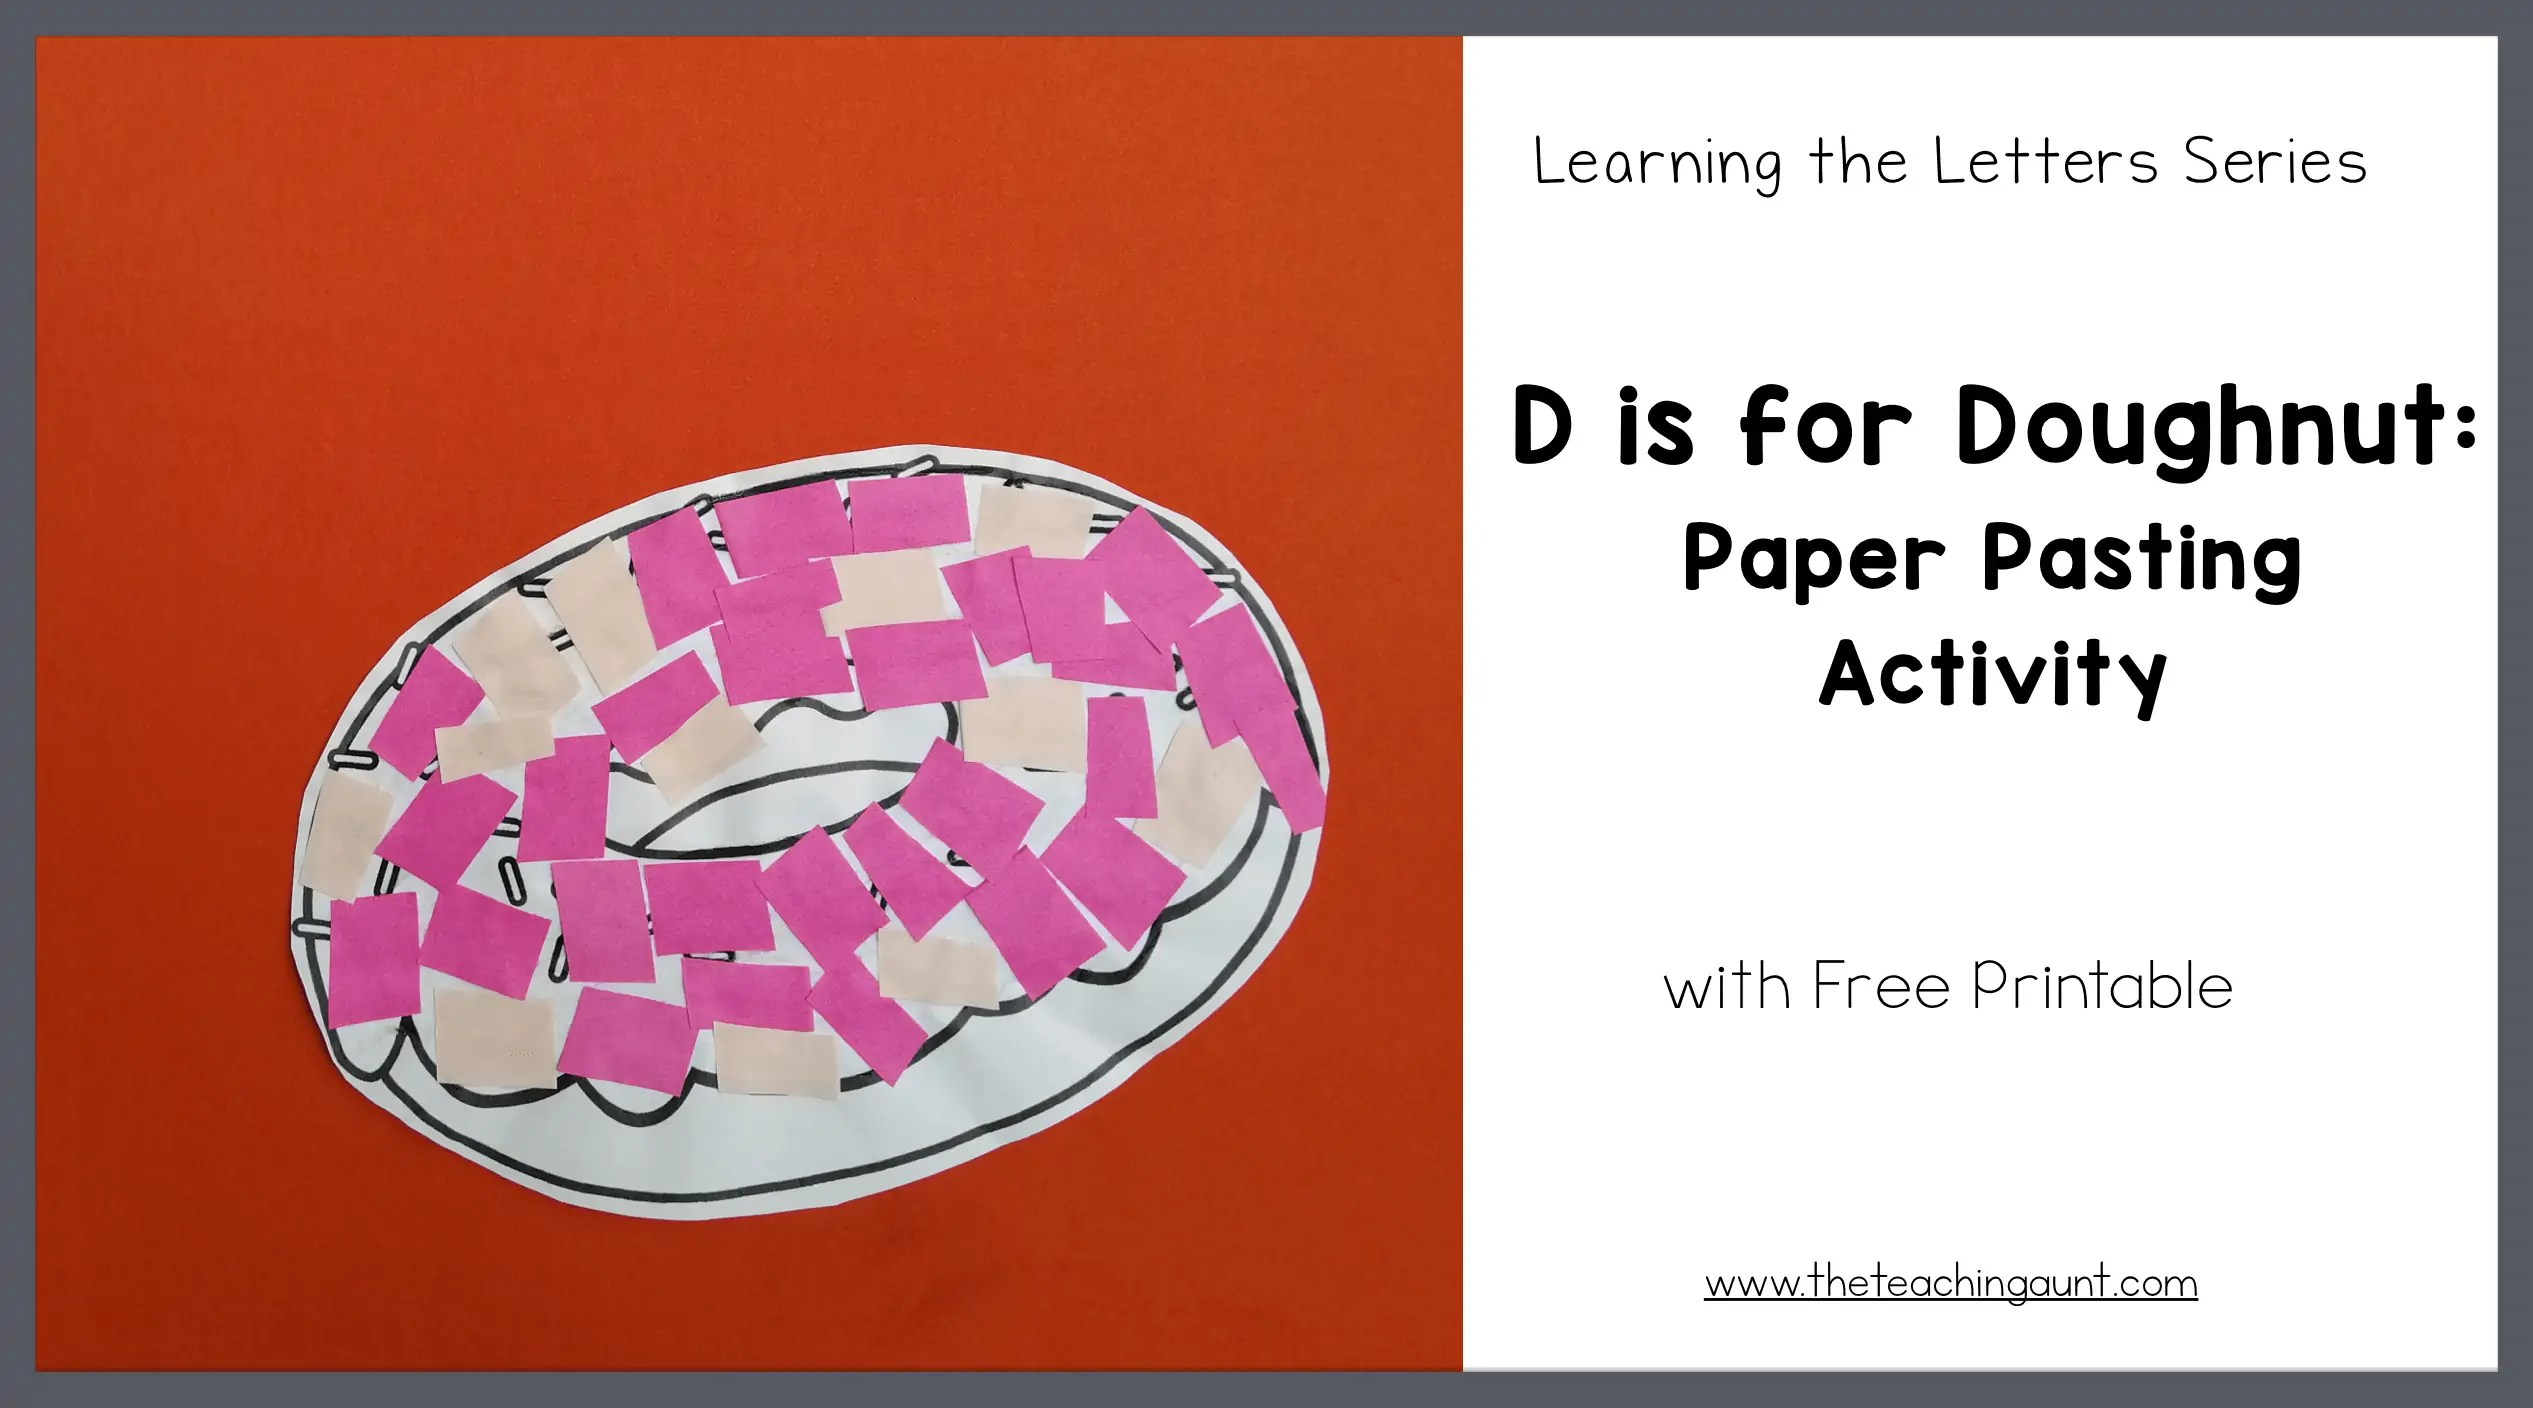 picture about Printable D&d Miniatures known as D is for Doughnut: Paper Pasting Match - The Coaching Aunt